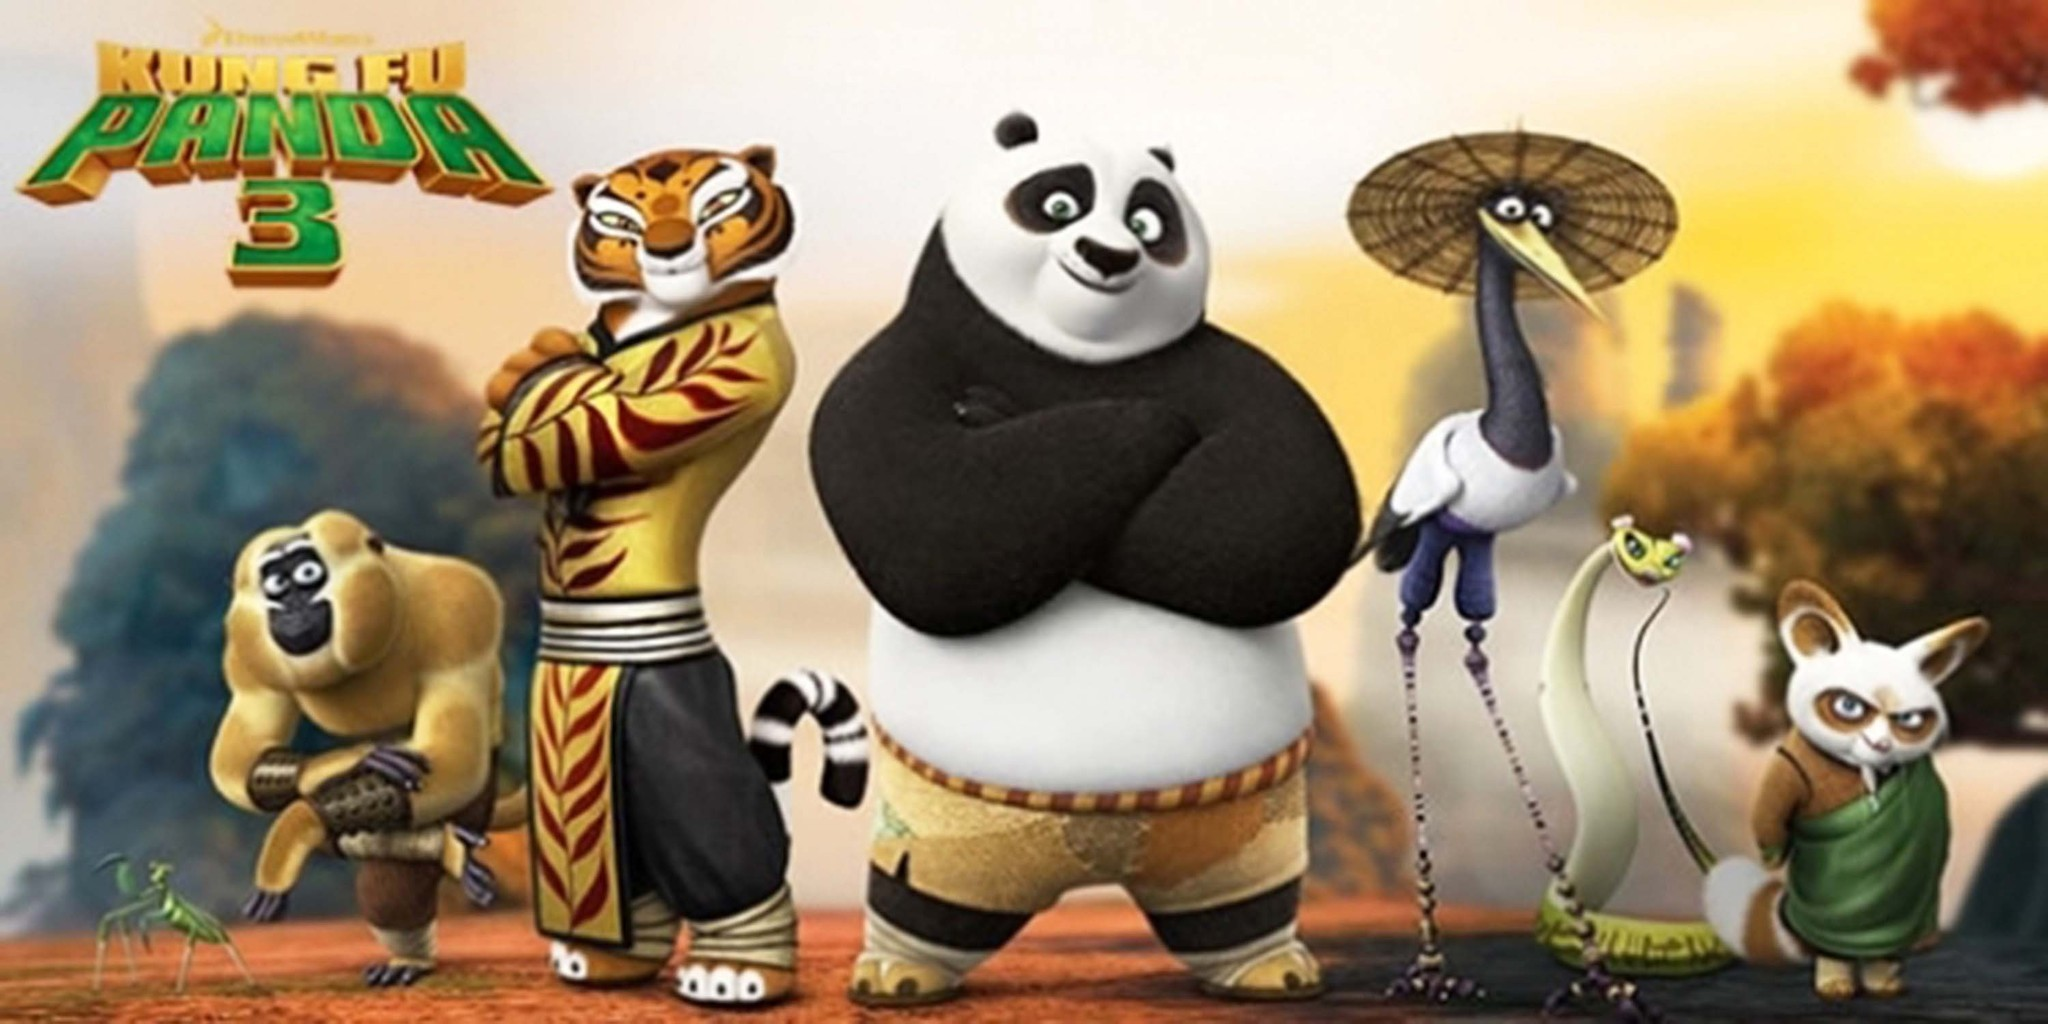 movie review: `kung fu panda 3,¿ upbeat but intense sequel looks at